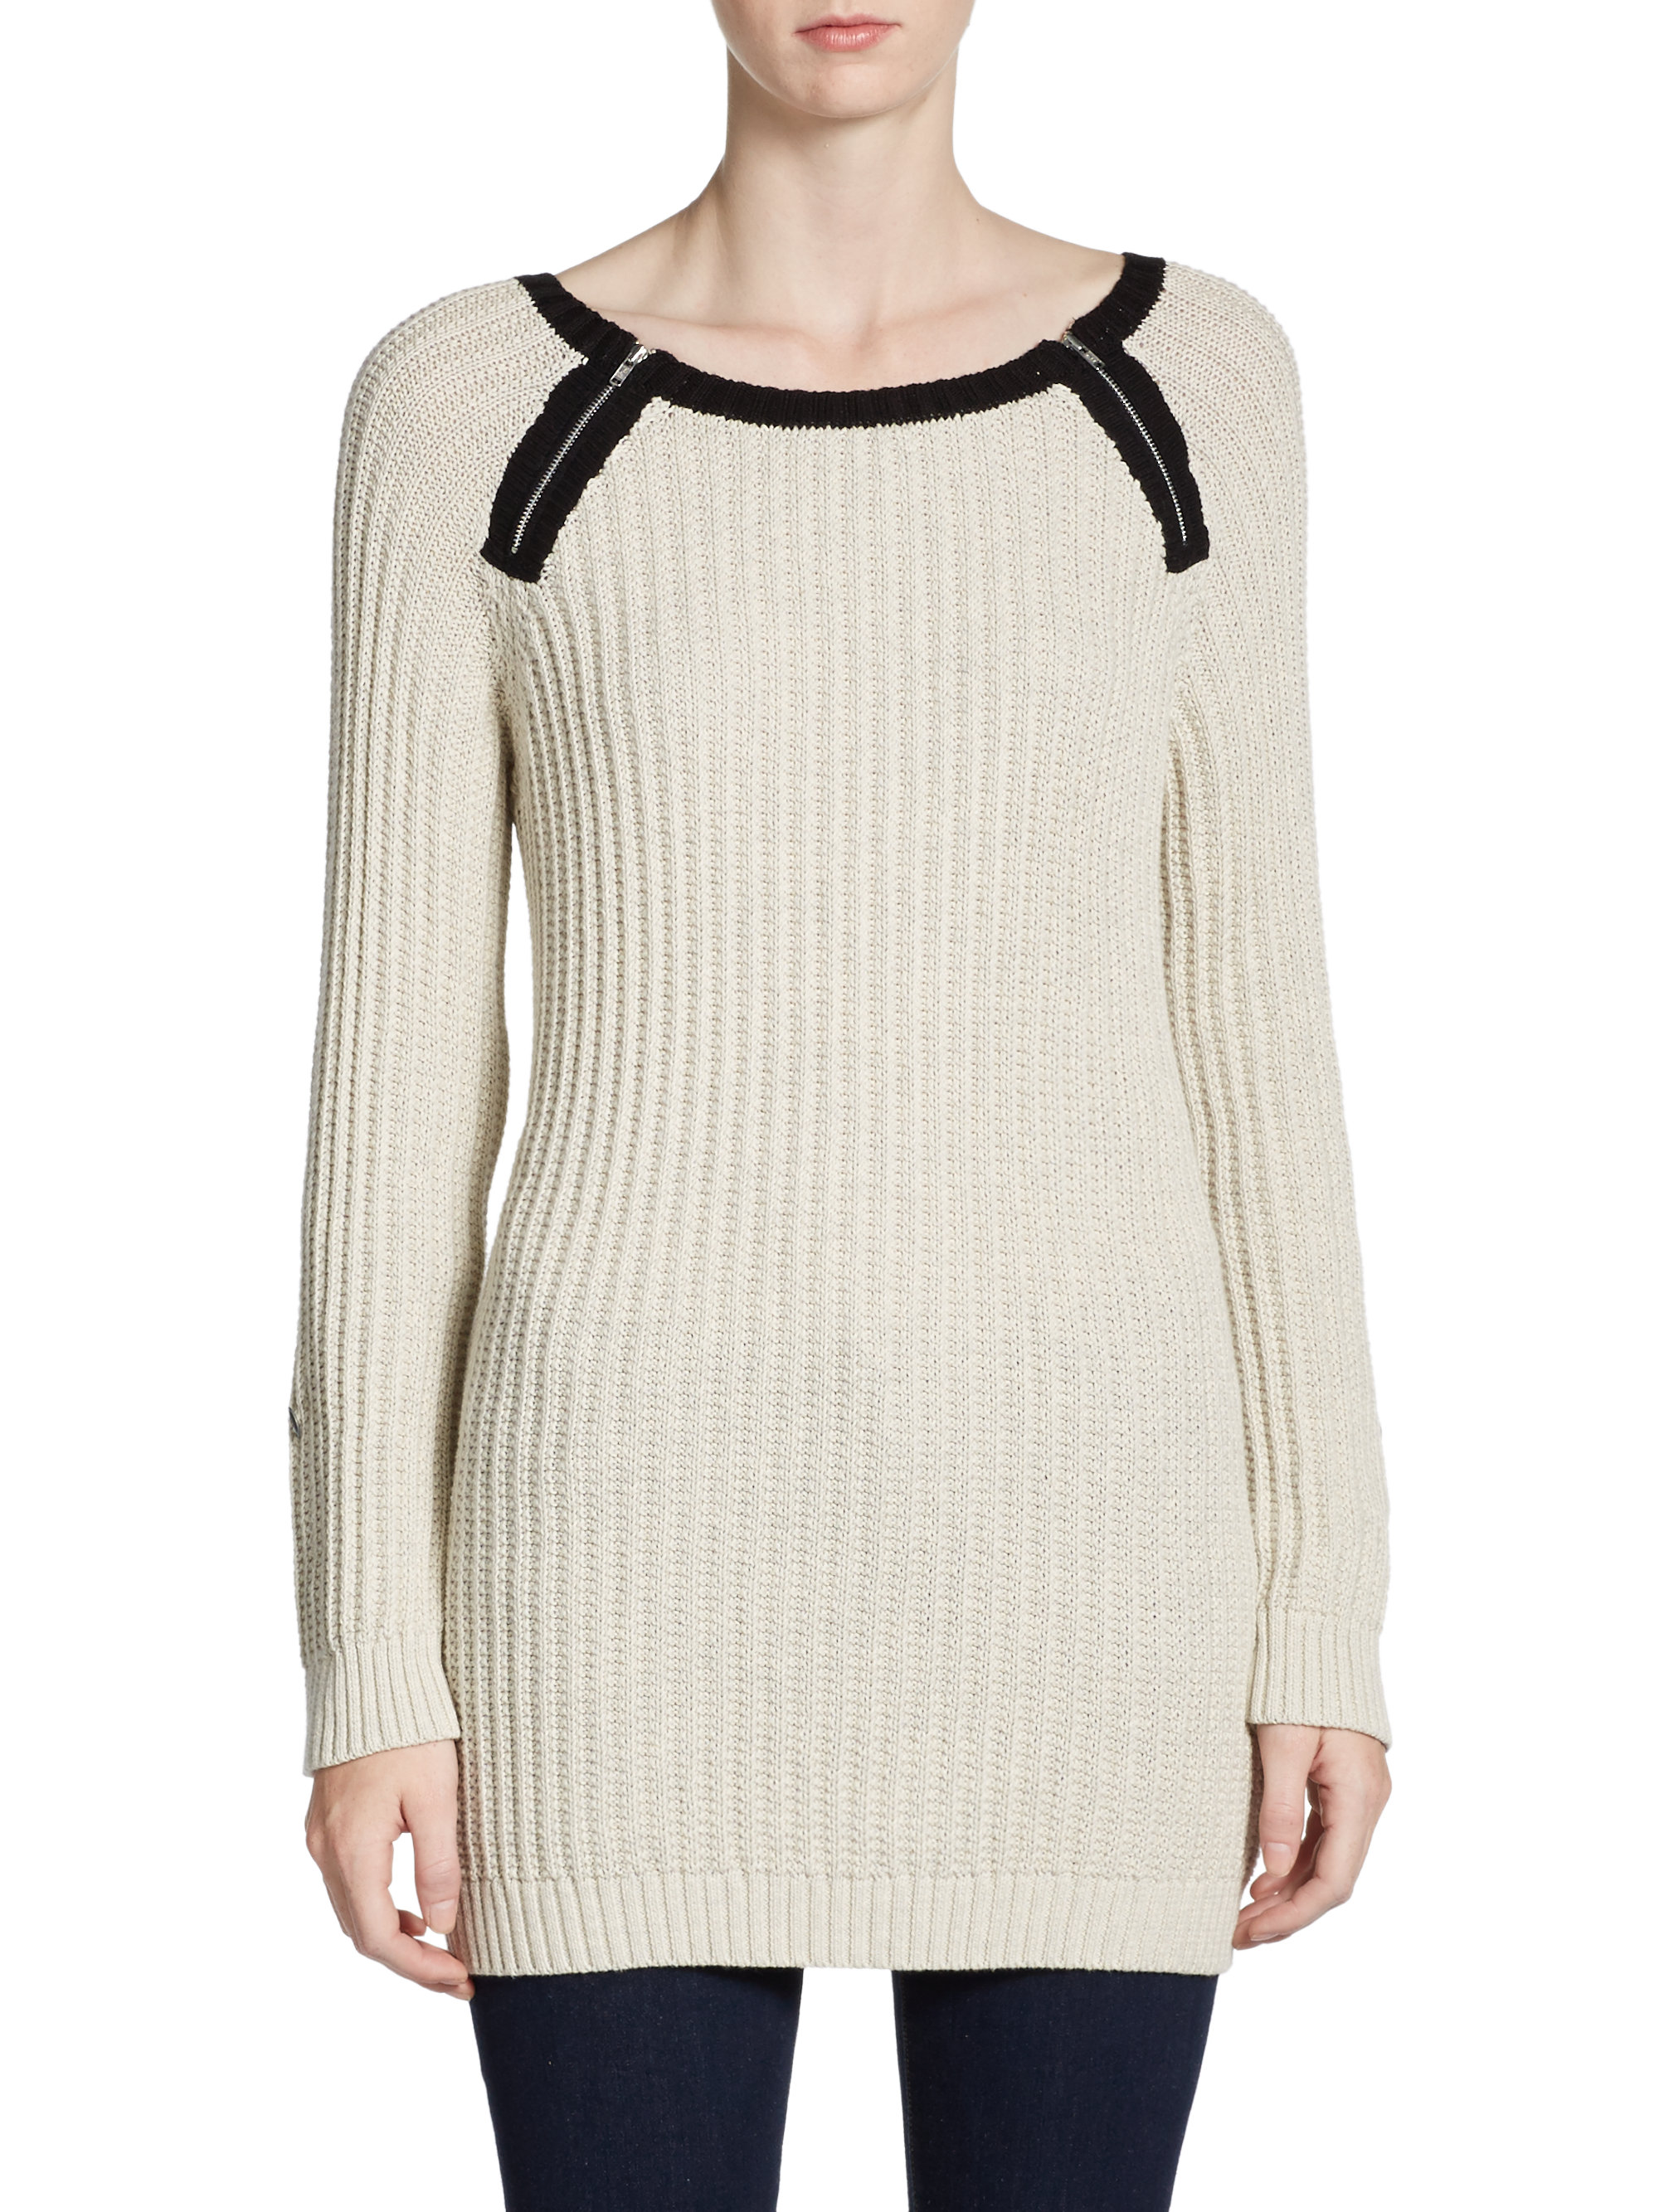 Cotton By Autumn Cashmere Zip Detailed Sweater Tunic in ...